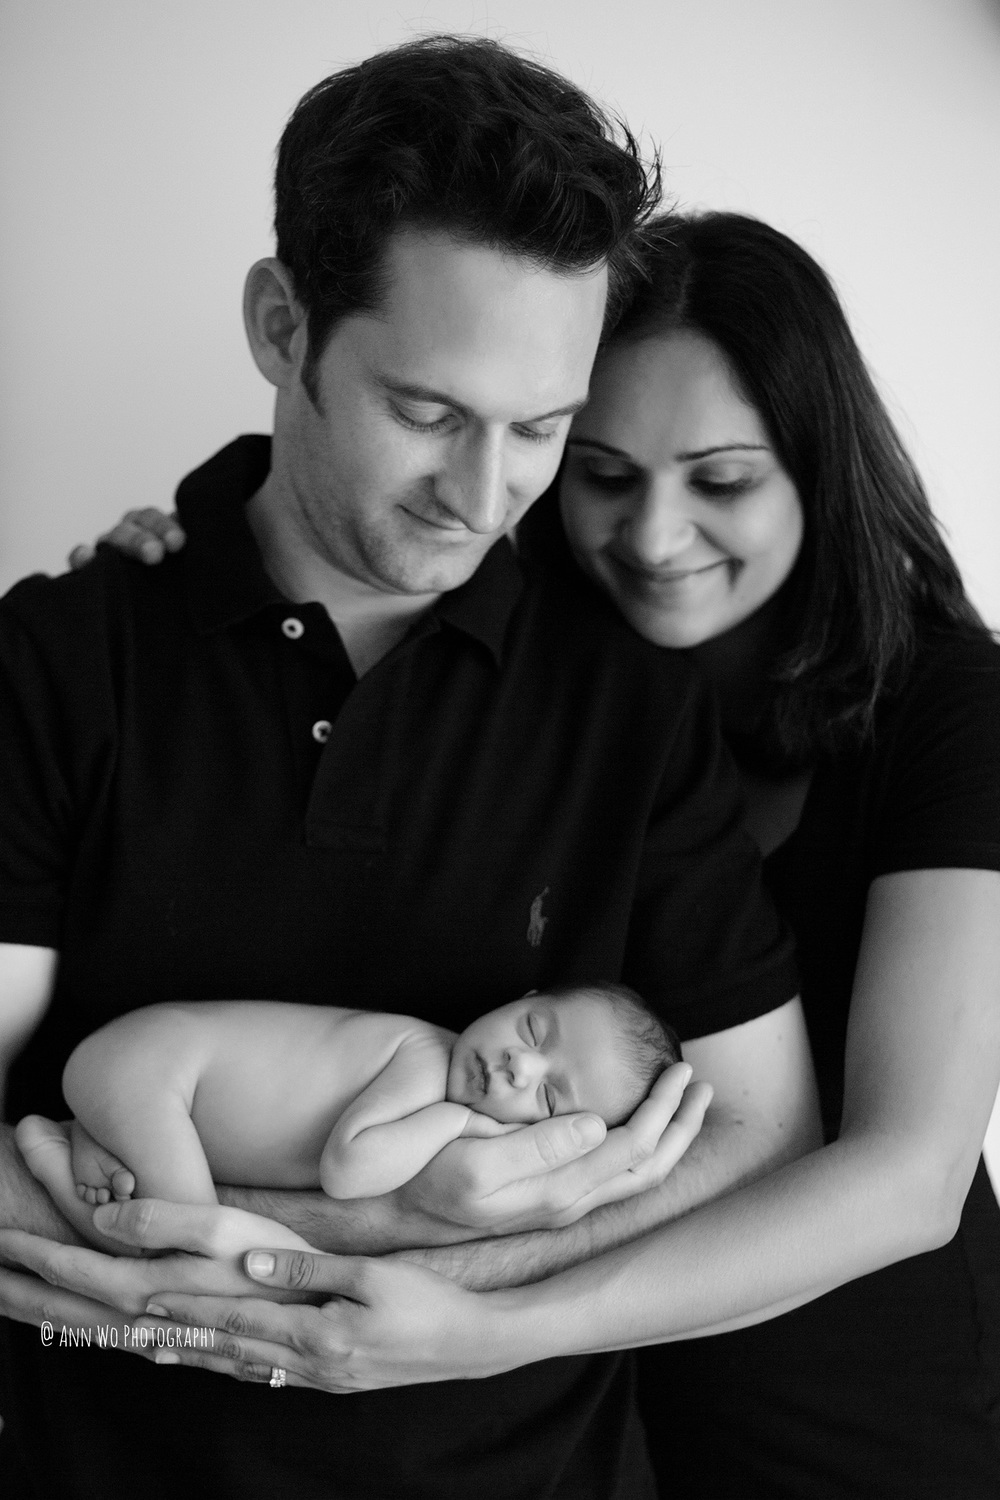 newborn-photographer-london-maternity-photography-uk-ann-wo008.jpg